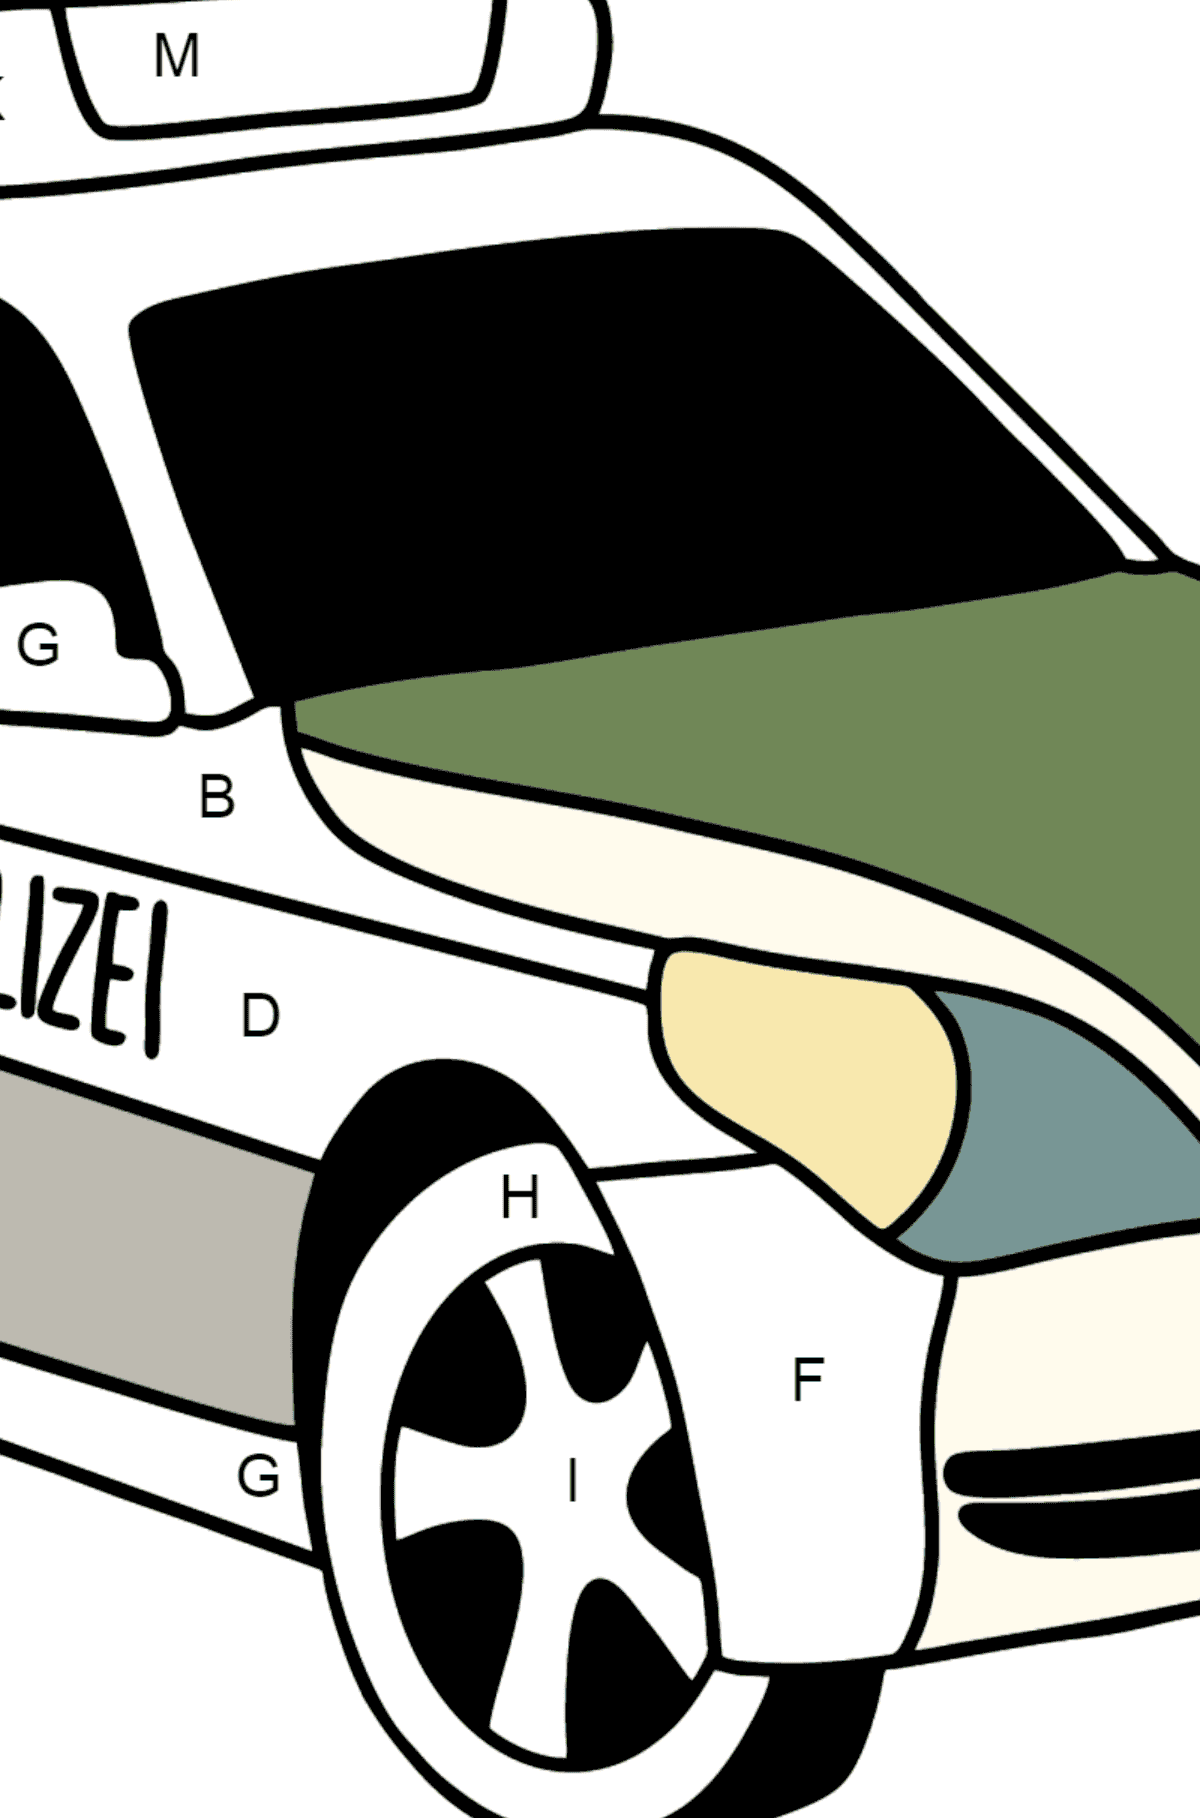 Police Car in Germany coloring page - Coloring by Letters for Kids